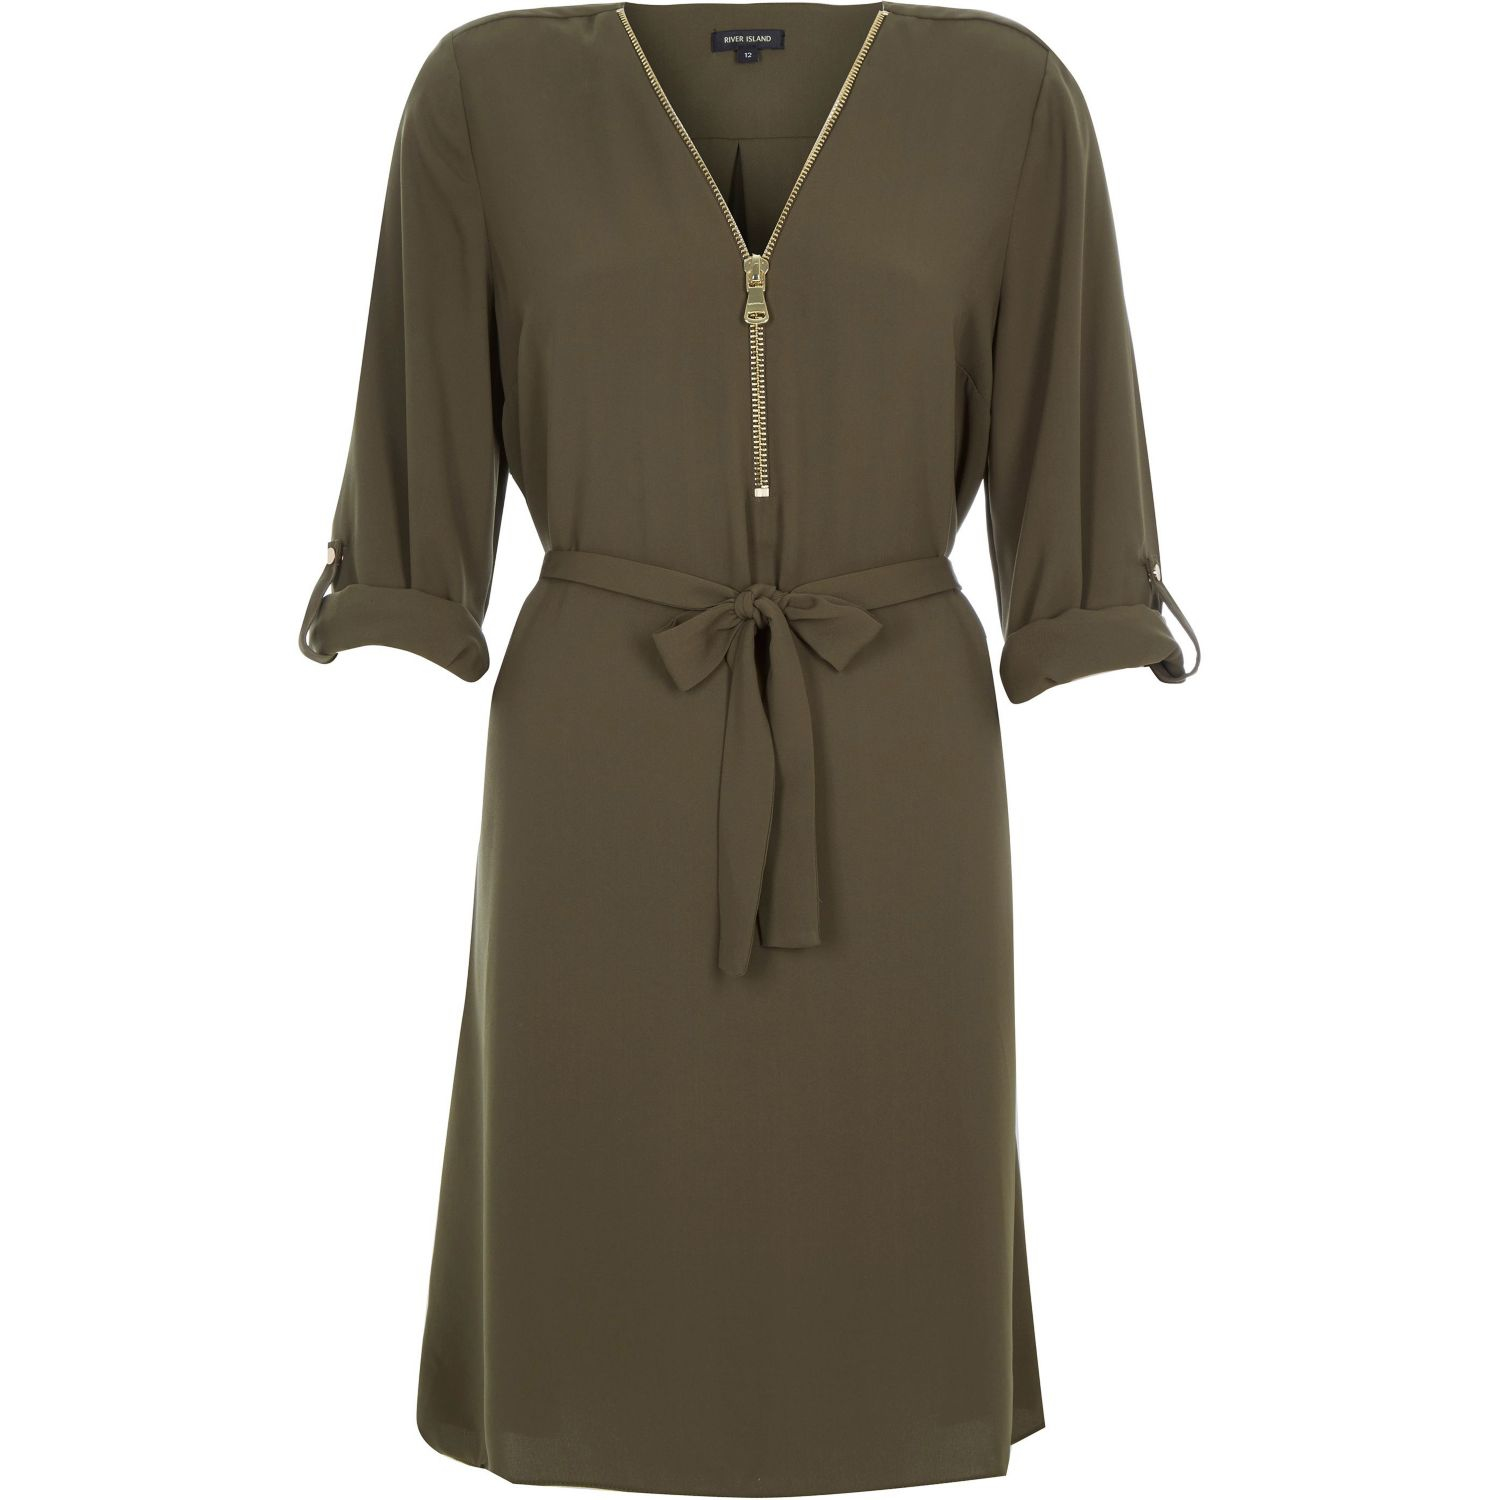 River island khaki zip up shirt dress in khaki lyst for Zip up dress shirt